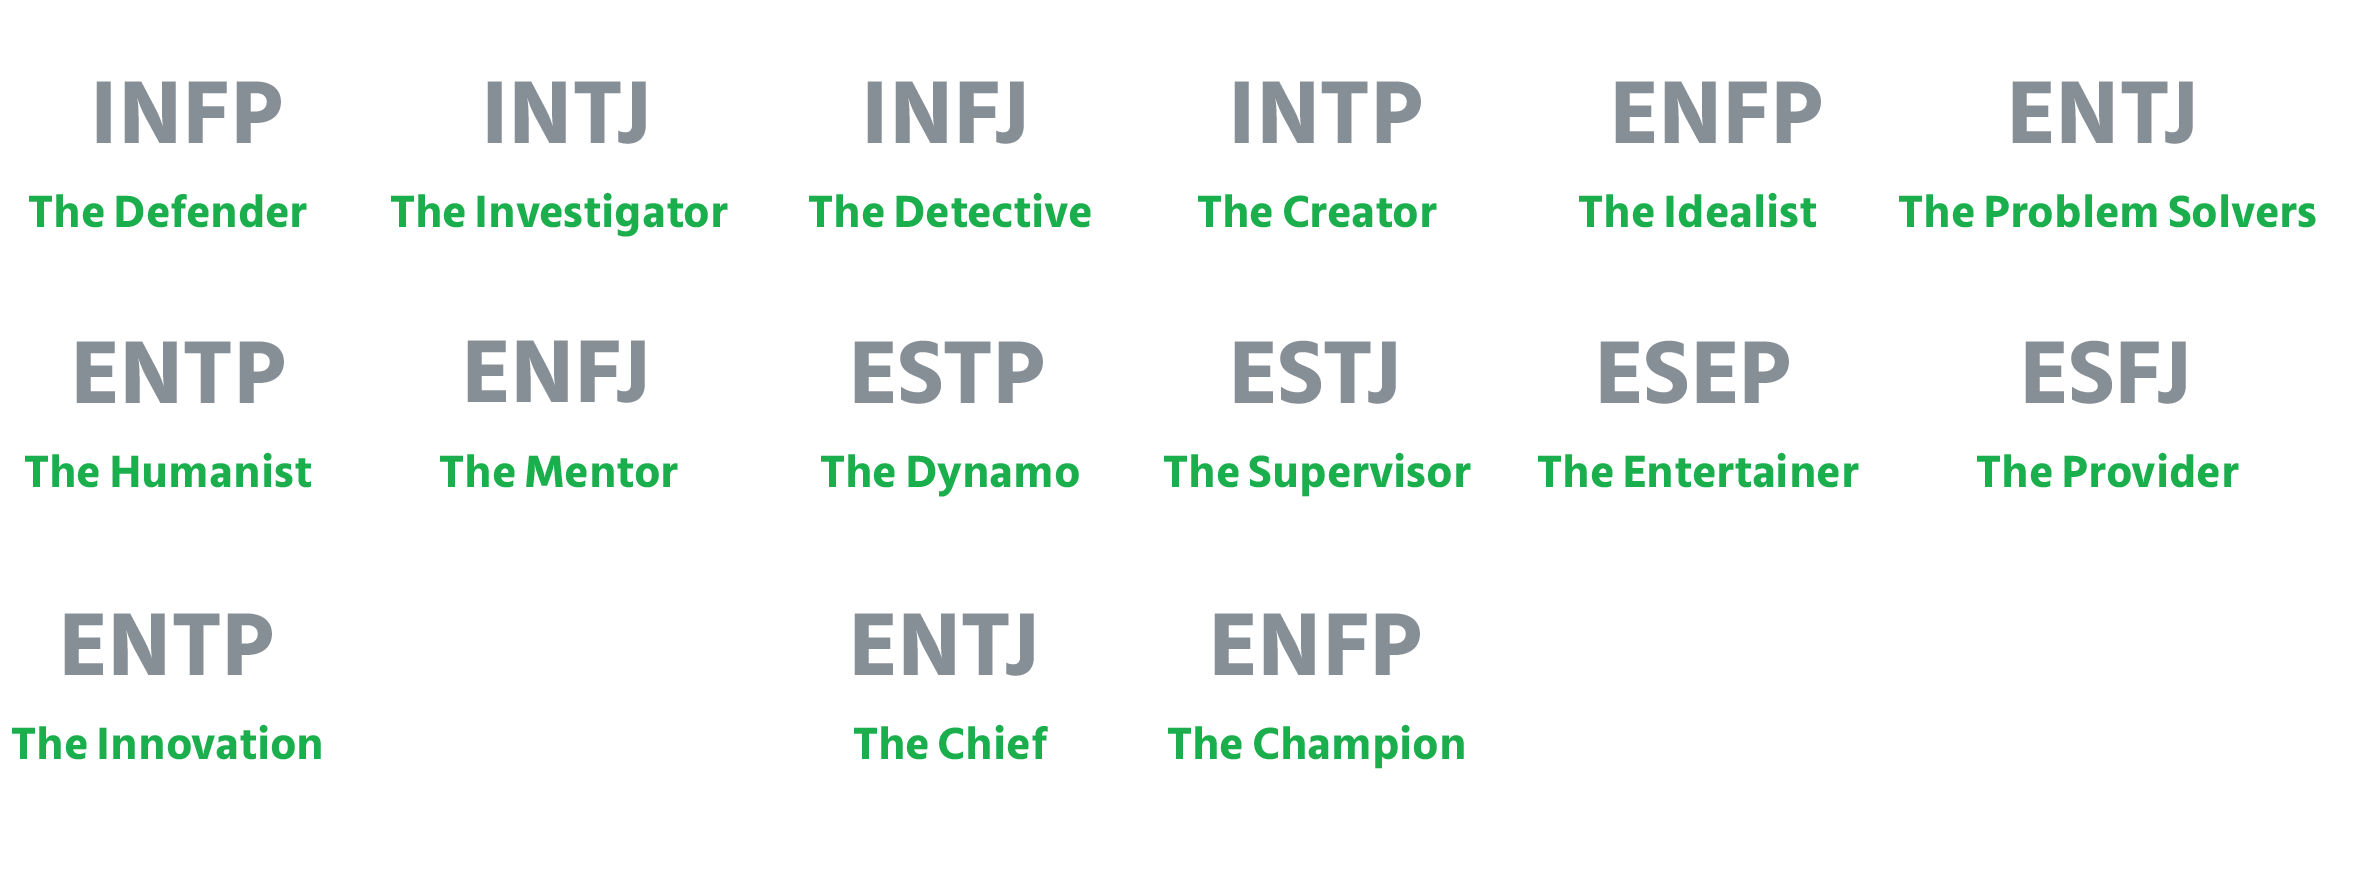 16 personality types is expressed by a four-letter code